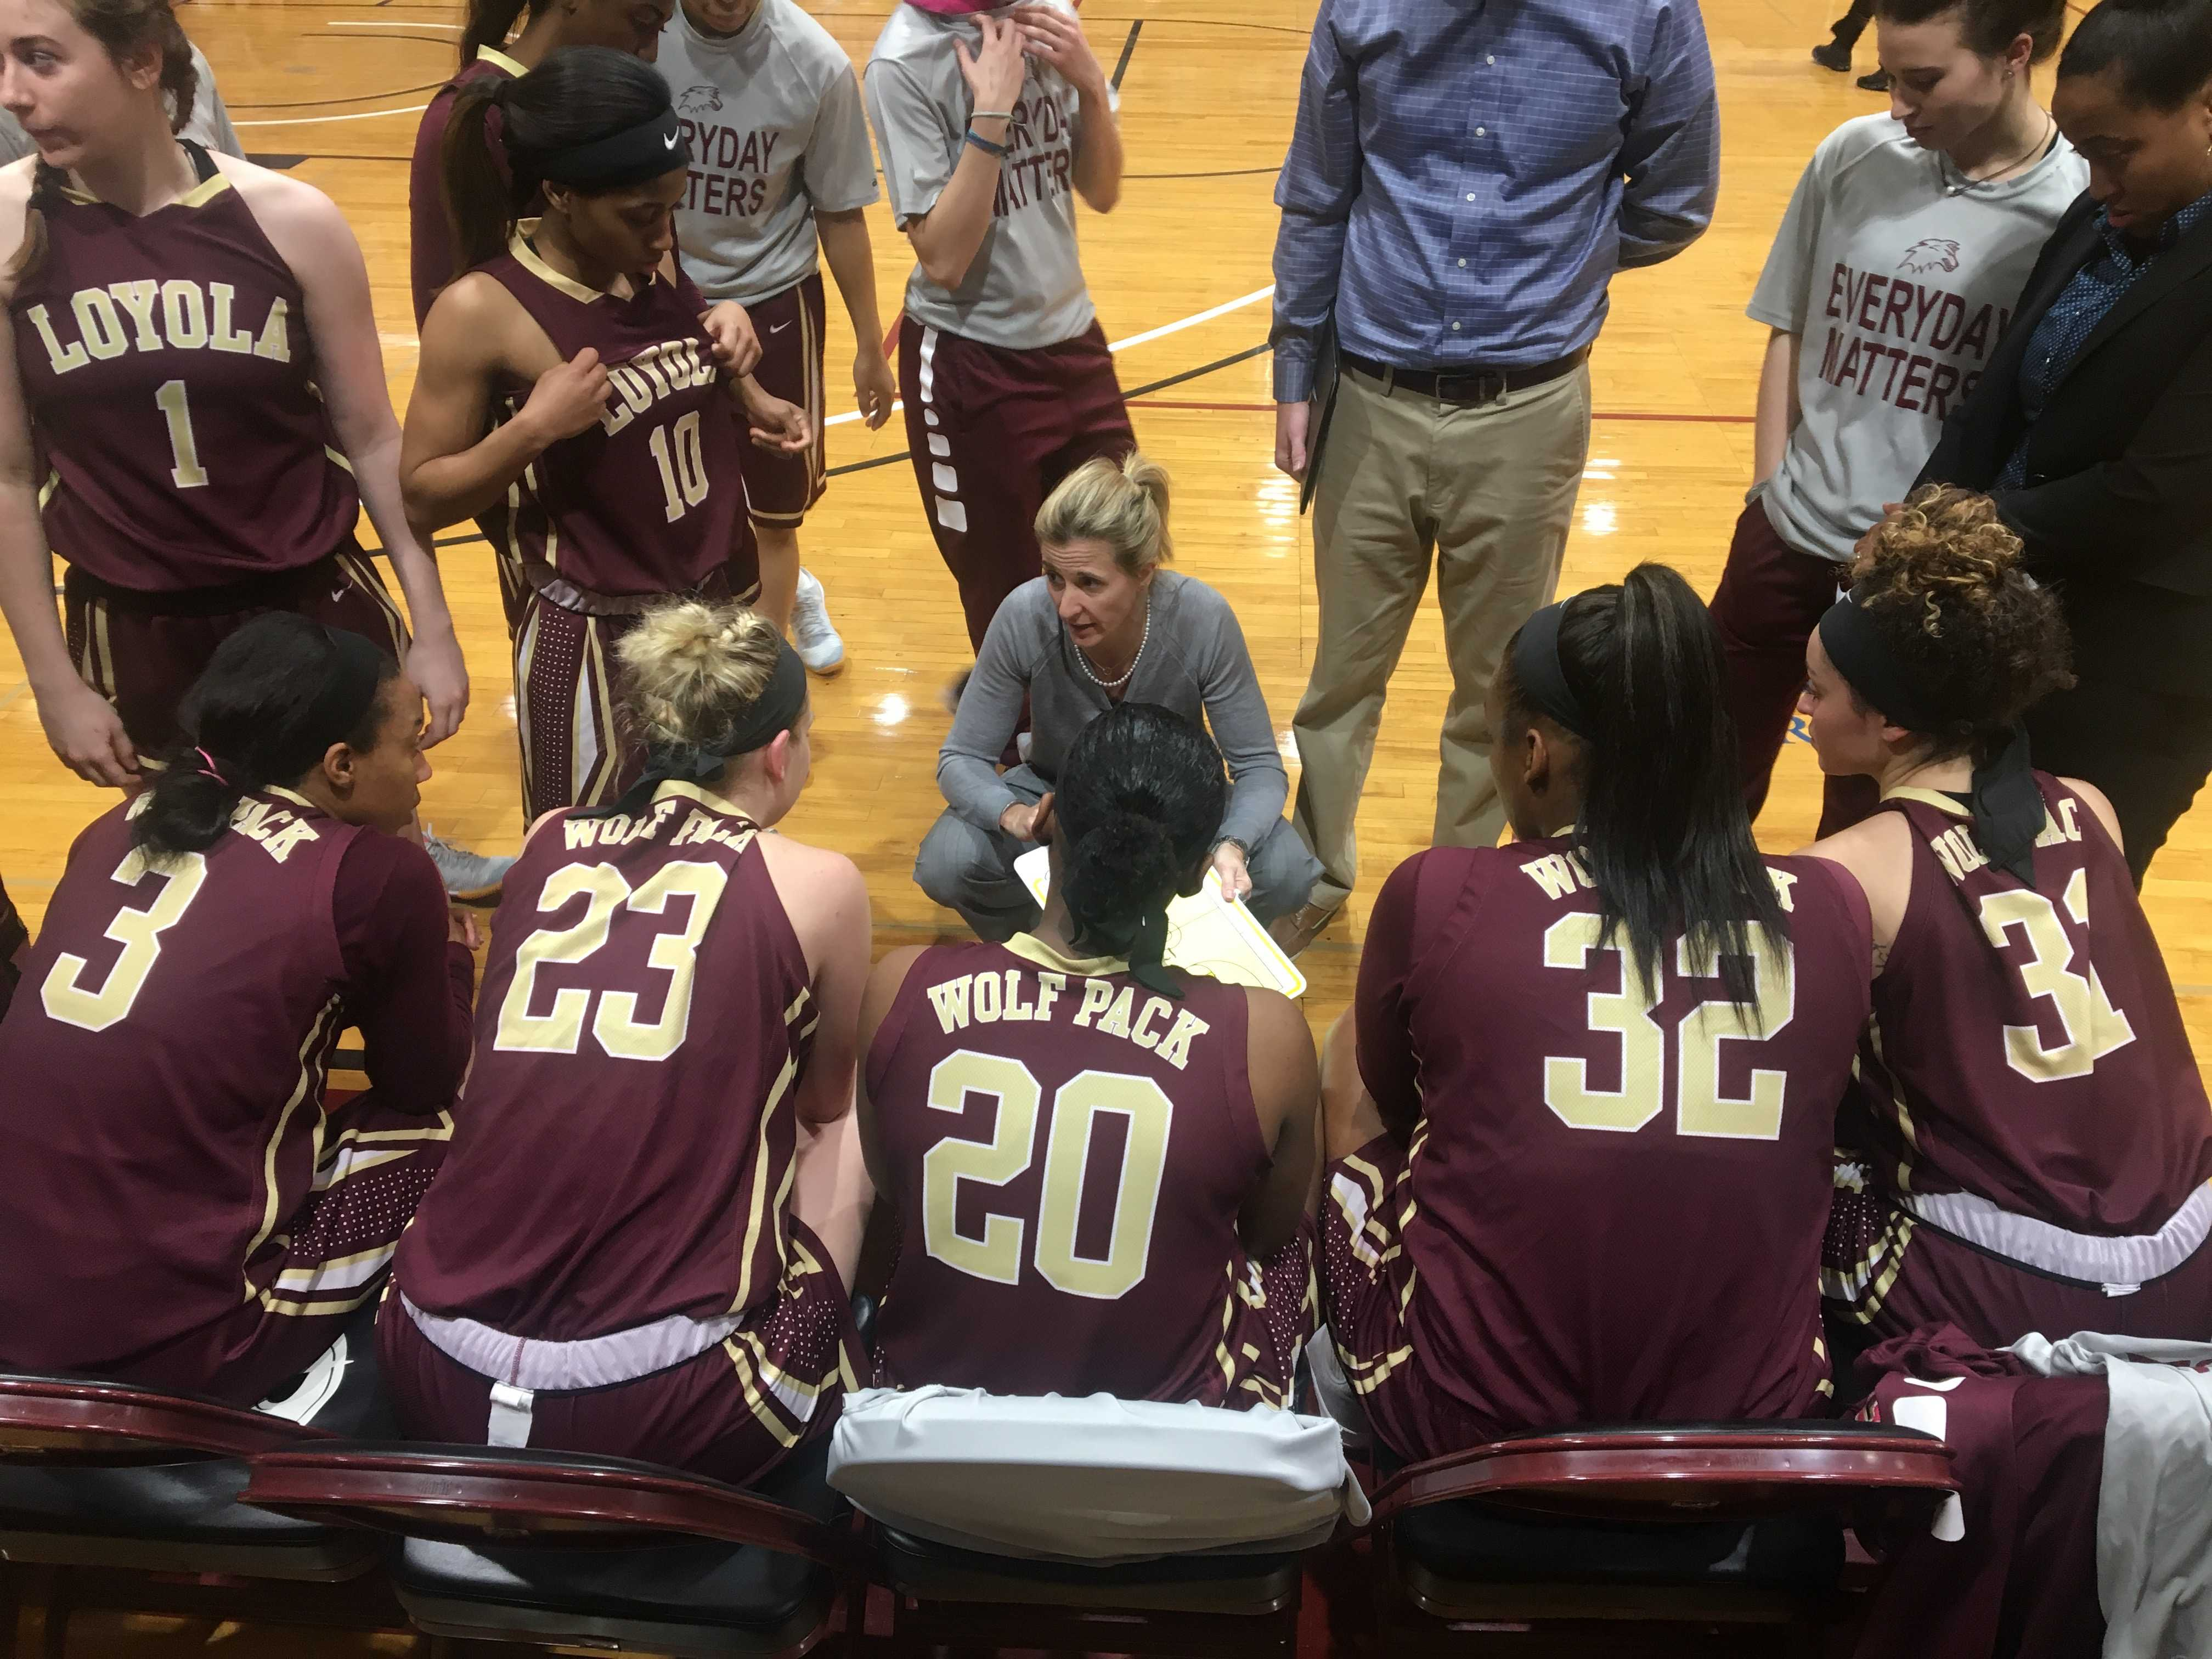 Head coach Kellie Kennedy draws up a play during their game. Kennedy won the SSAC Coach of the Year honors on Wednesday. Photo credit: Caroline Gonzalez